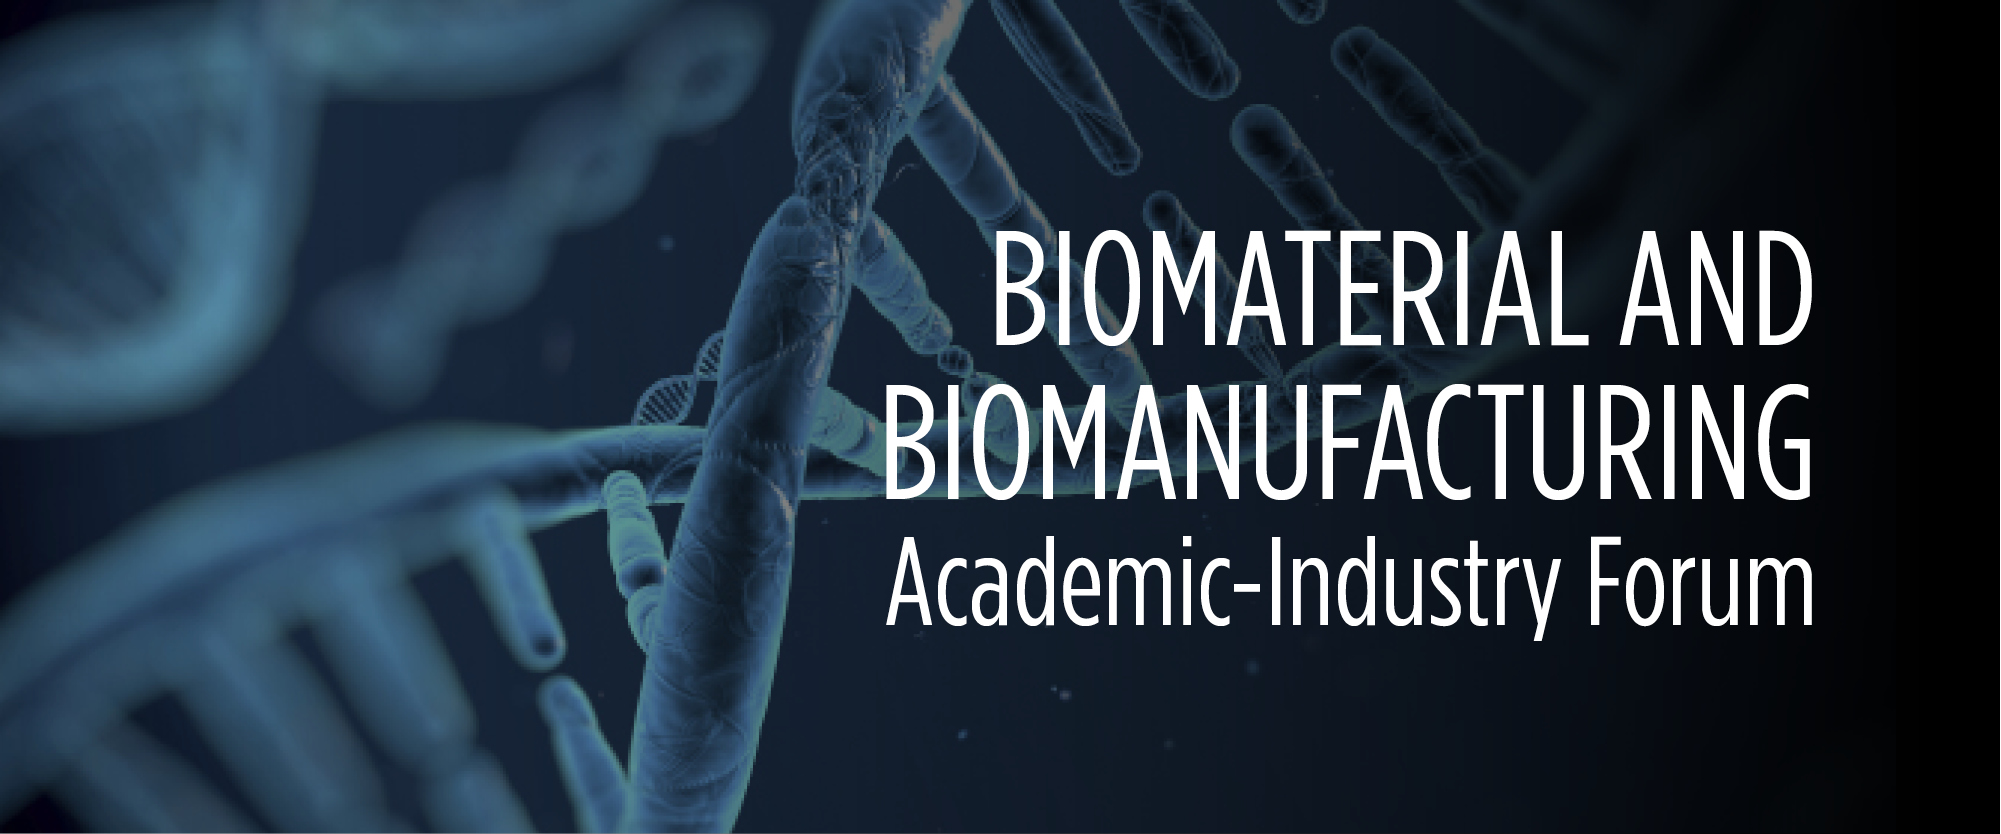 Biomaterial & Biomanufacturing Academic-Industry Forum